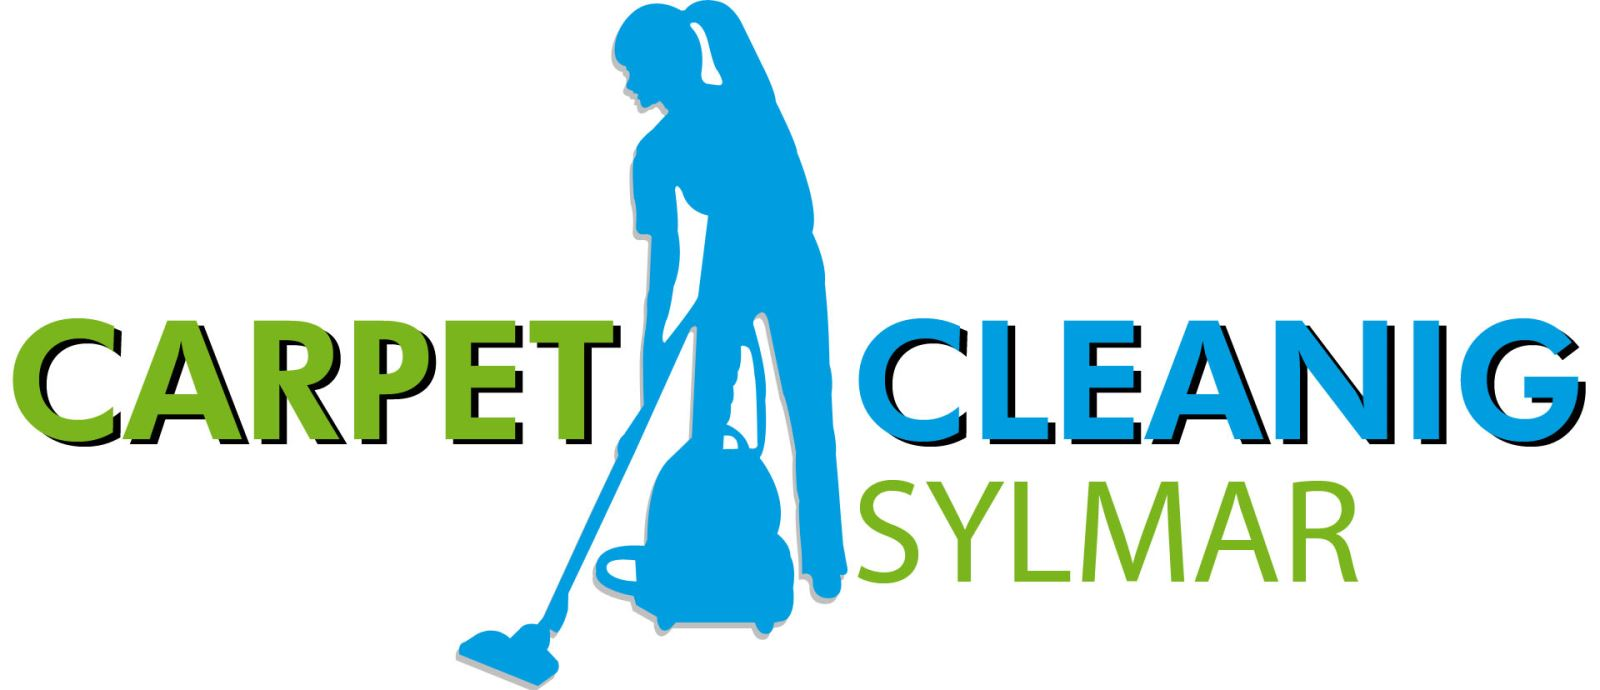 Carpet Cleaning Sylmar,CA